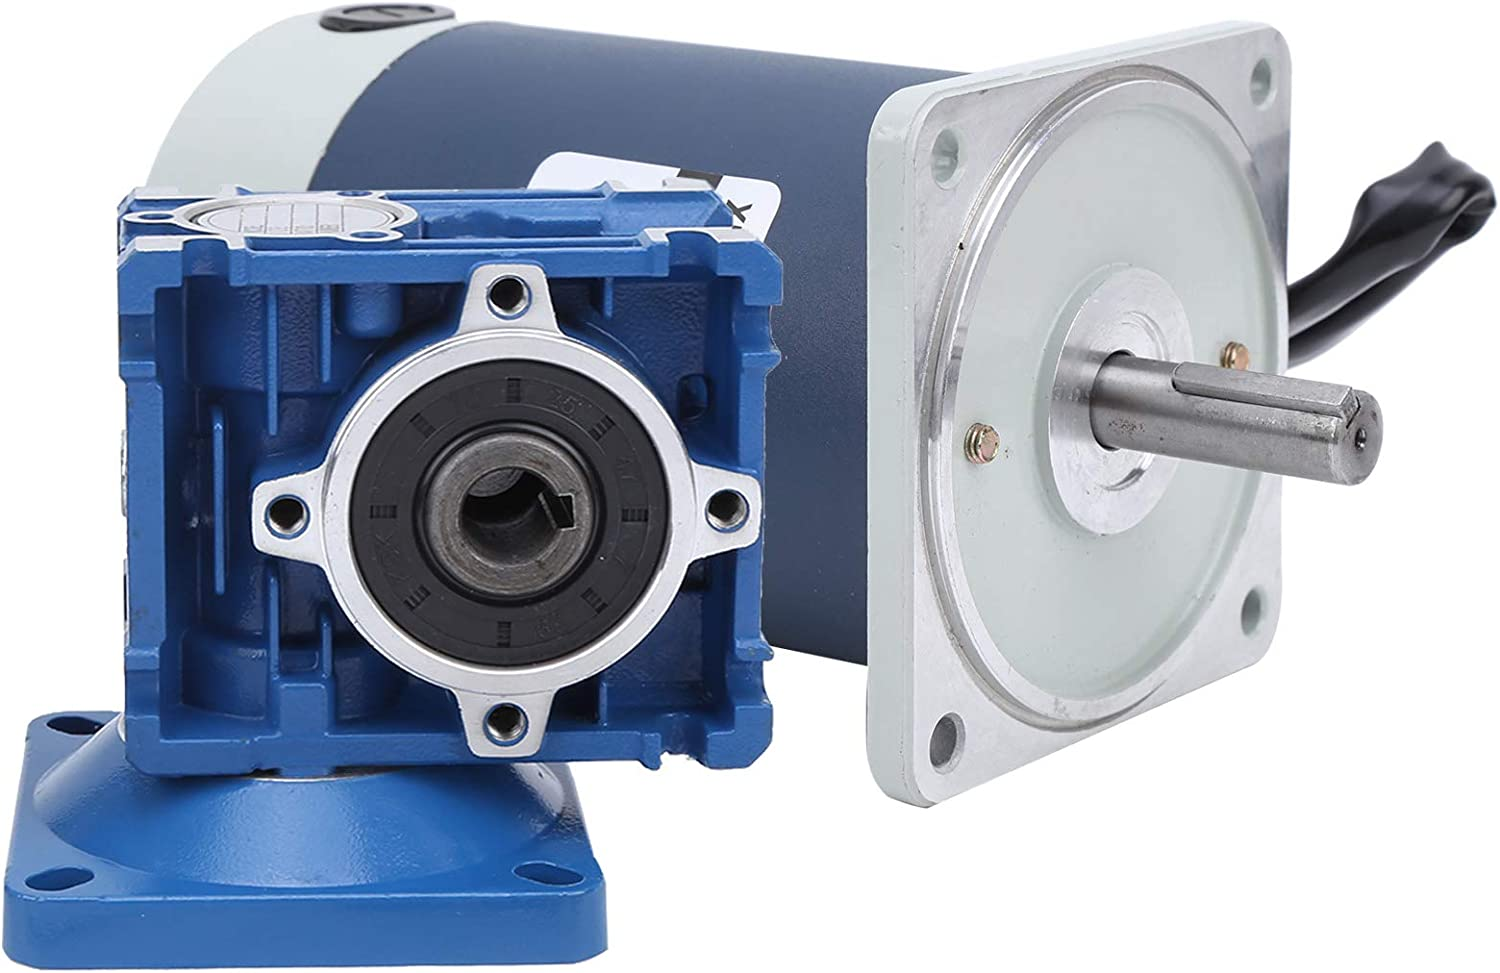 Direct sale of manufacturer Mxzzand Indefinitely Reduction Ratio 100% Motor Geared Worm 90W